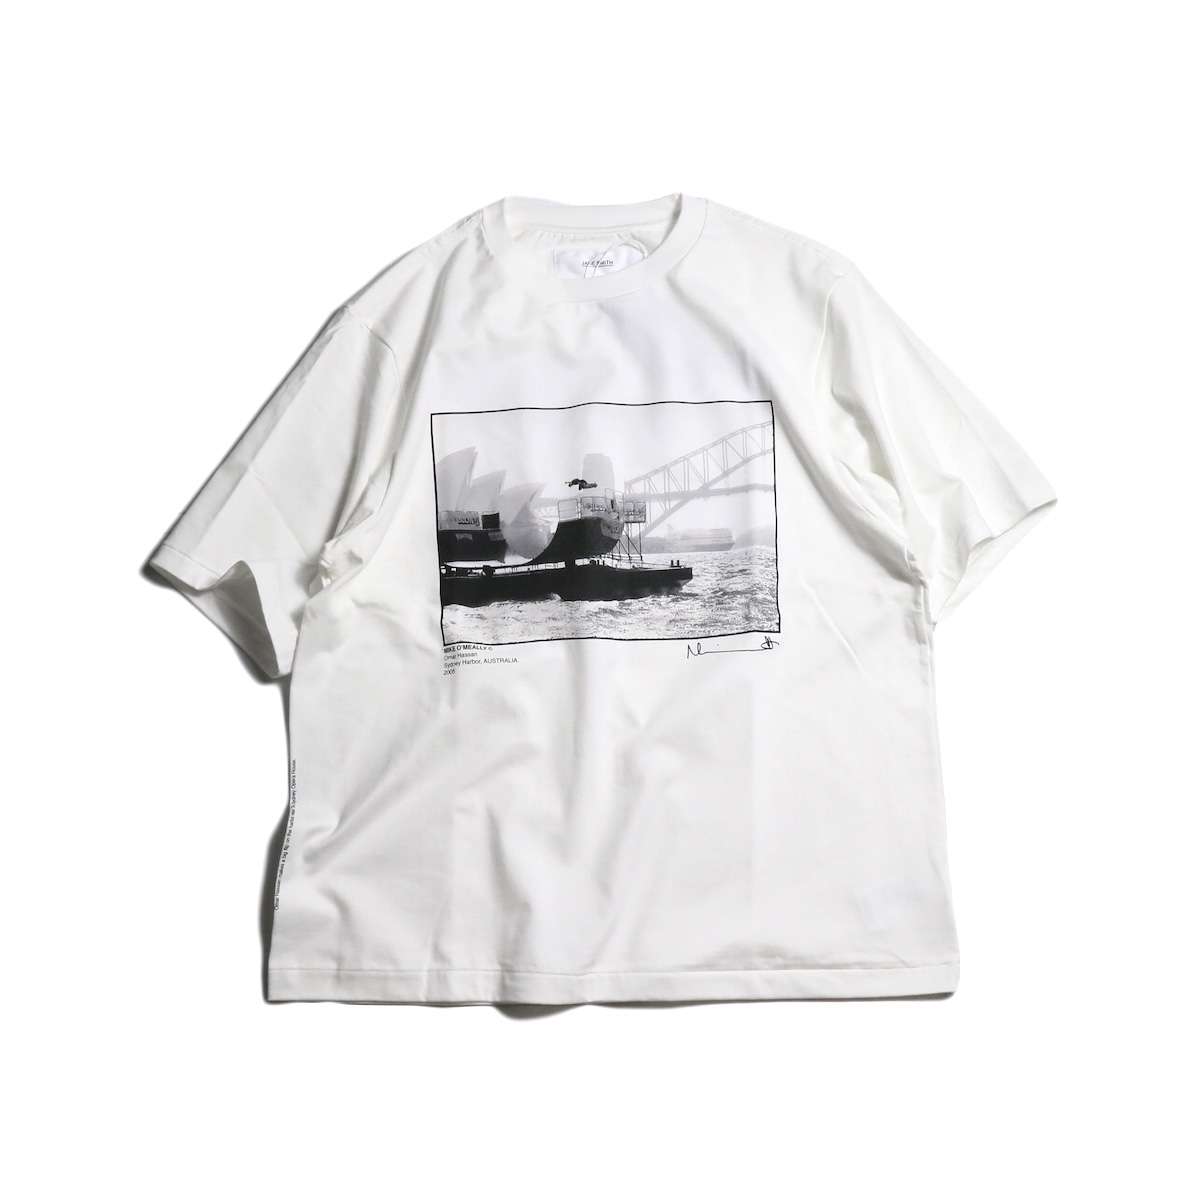 JANE SMITH / OMAR HASSAN SYDNEY HARBOR S/S Tee 正面